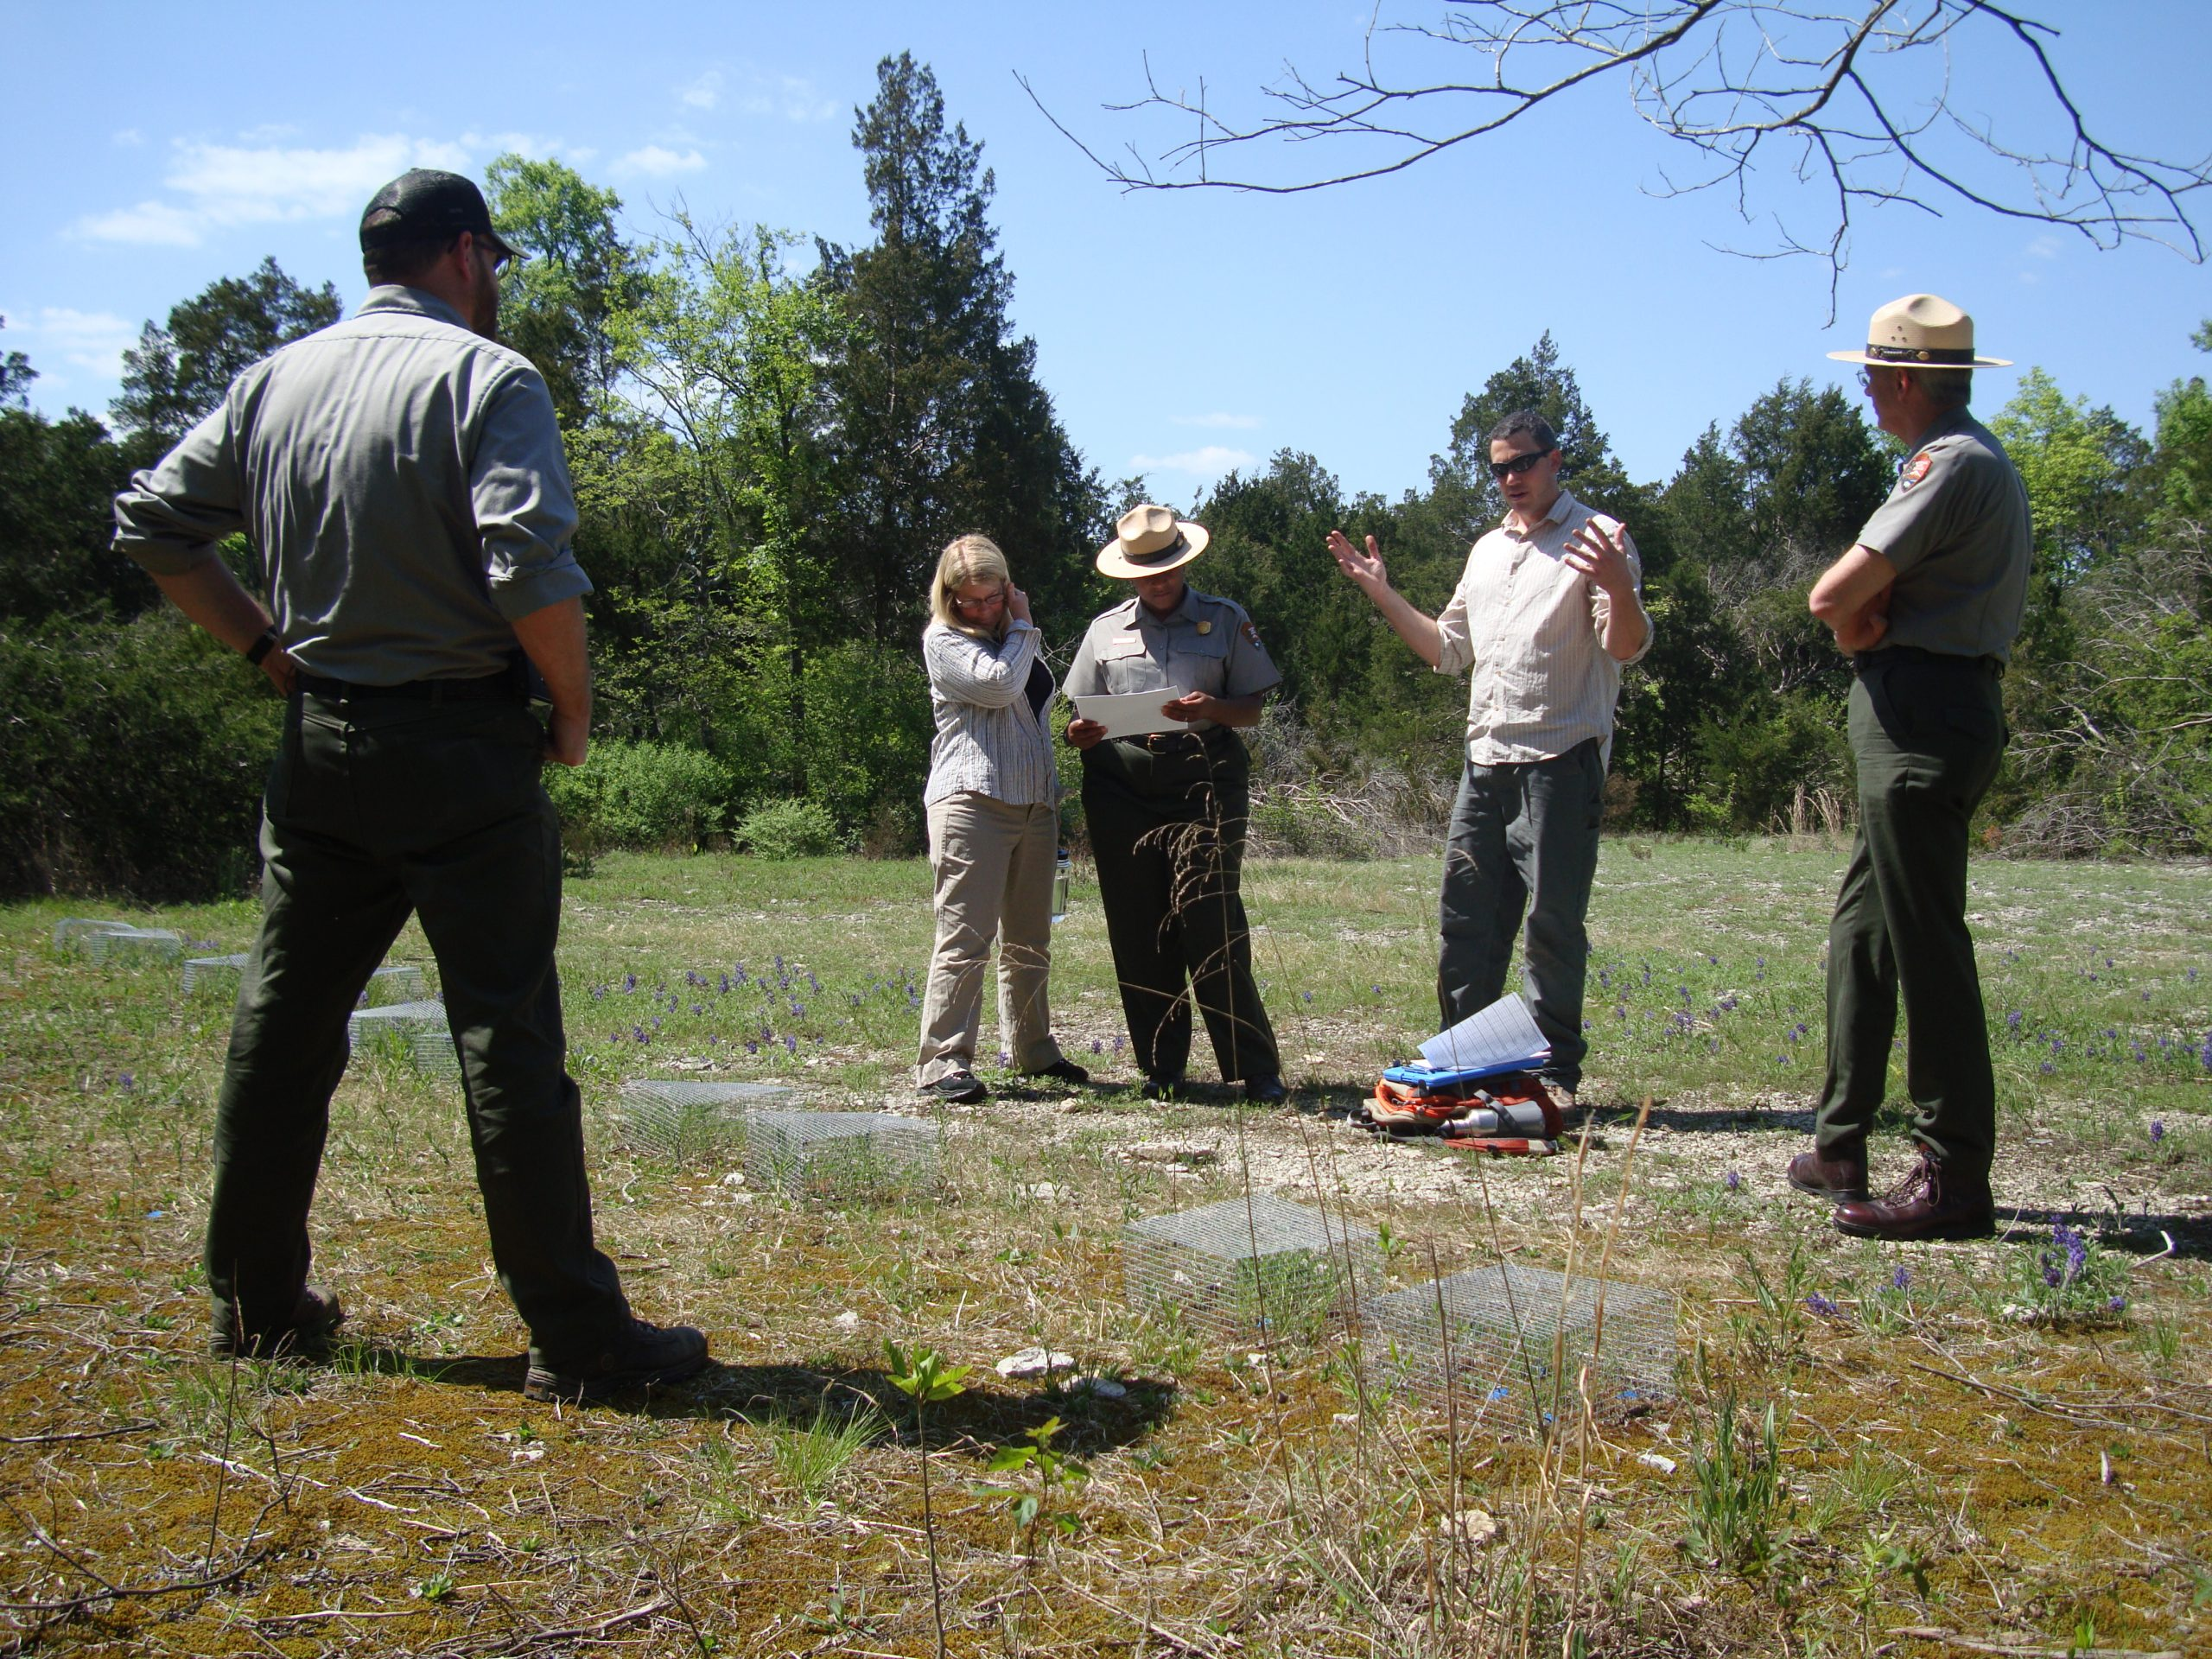 Dr. Albrecht shares his reintroduction work with U.S. Fish and Wildlife Service and National Park Service staff.